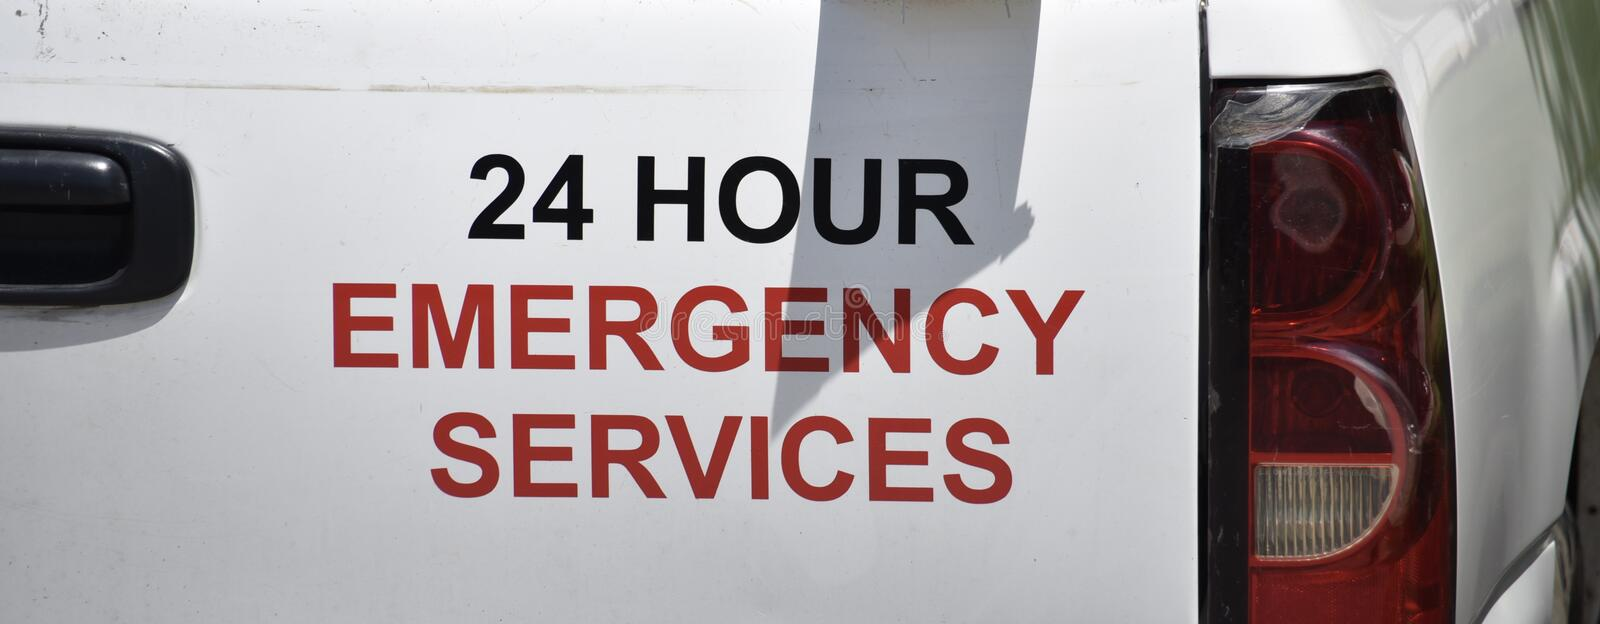 Emergency Services Provider for Flood, Fire, Plumbing Storm Damage royalty free stock photography